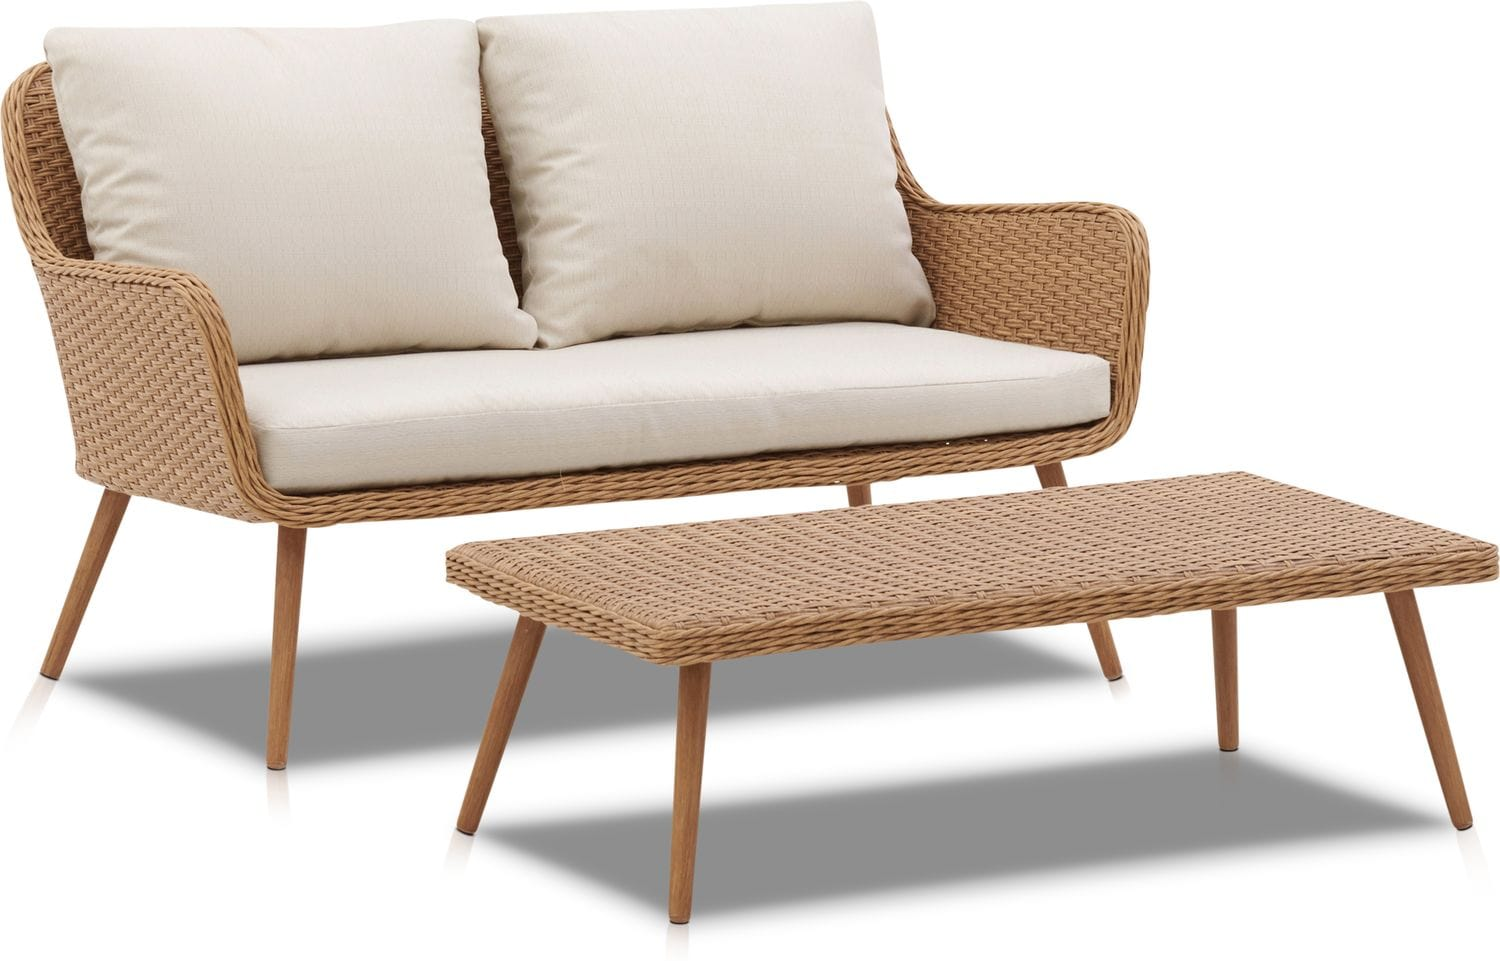 Outdoor Furniture - Delray Outdoor Loveseat and Coffee Table Set